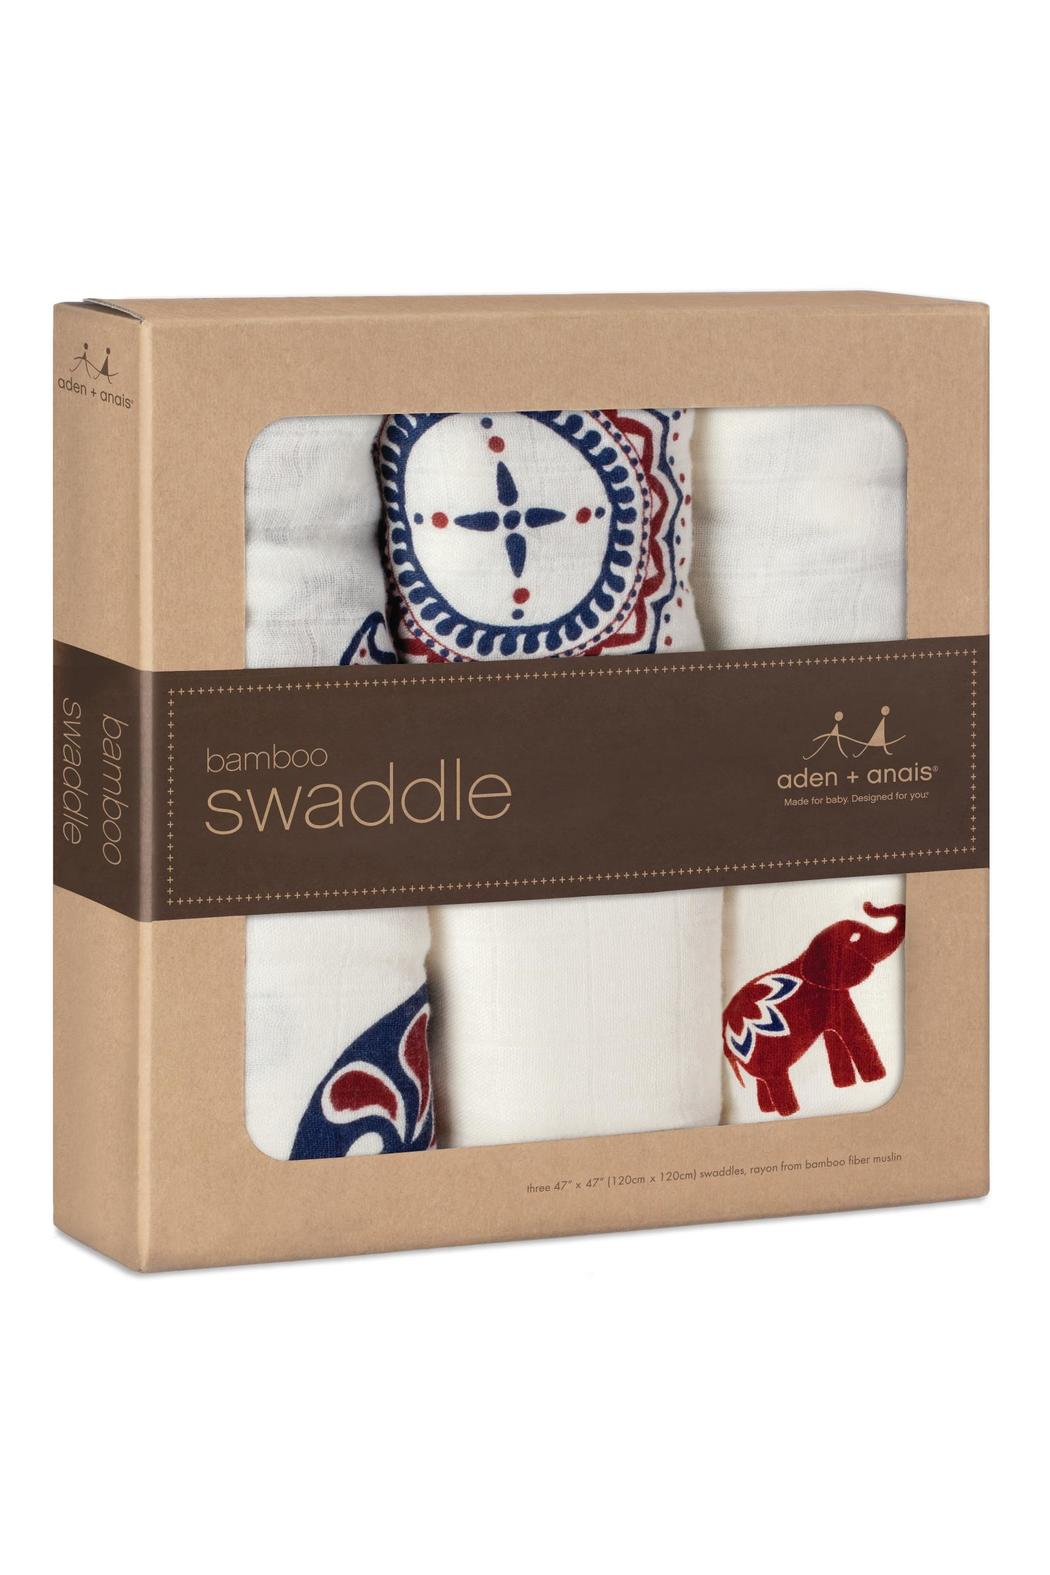 From the moment I was gifted a set of aden + anais muslin swaddle blankets at my baby